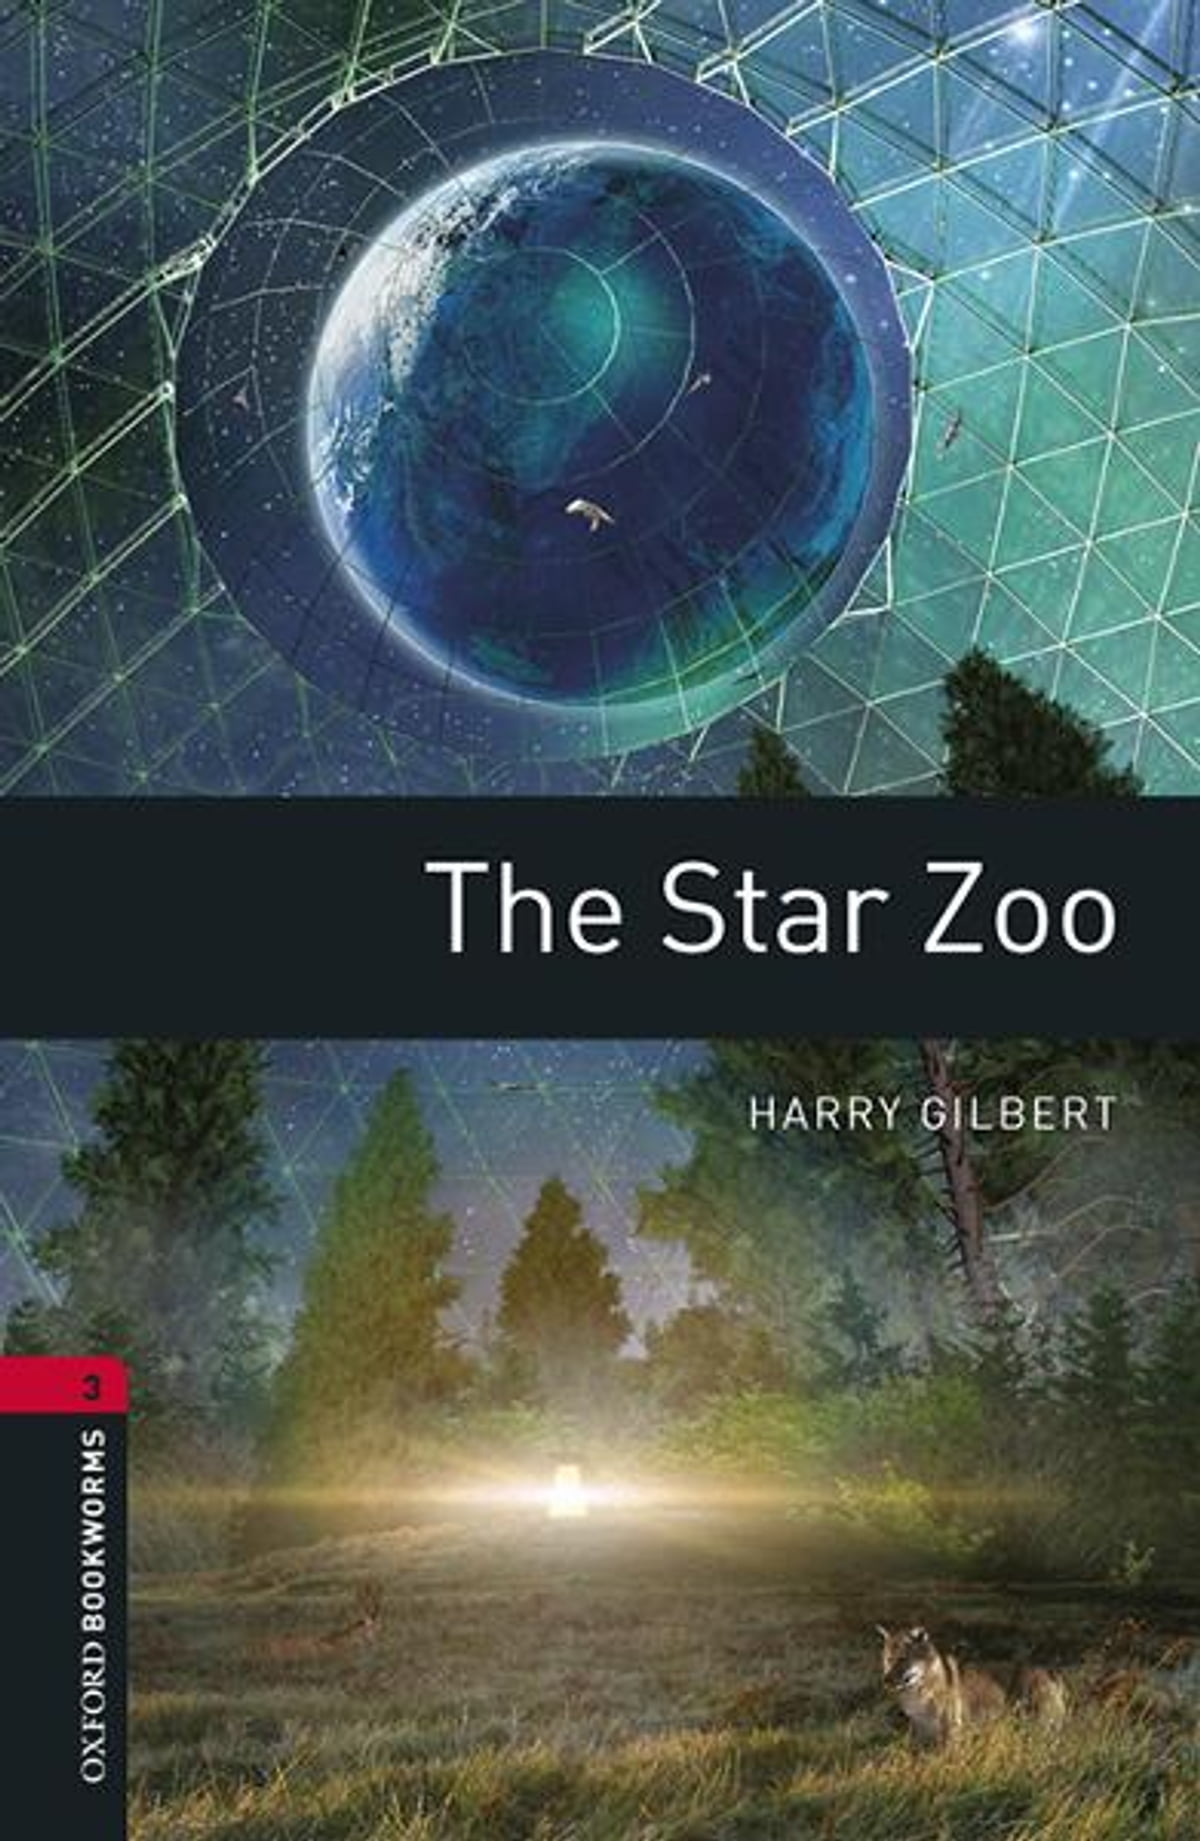 Oxford Bookworms Library The Star Zoo Level 3 Oxford Bookworms Library Ebook By